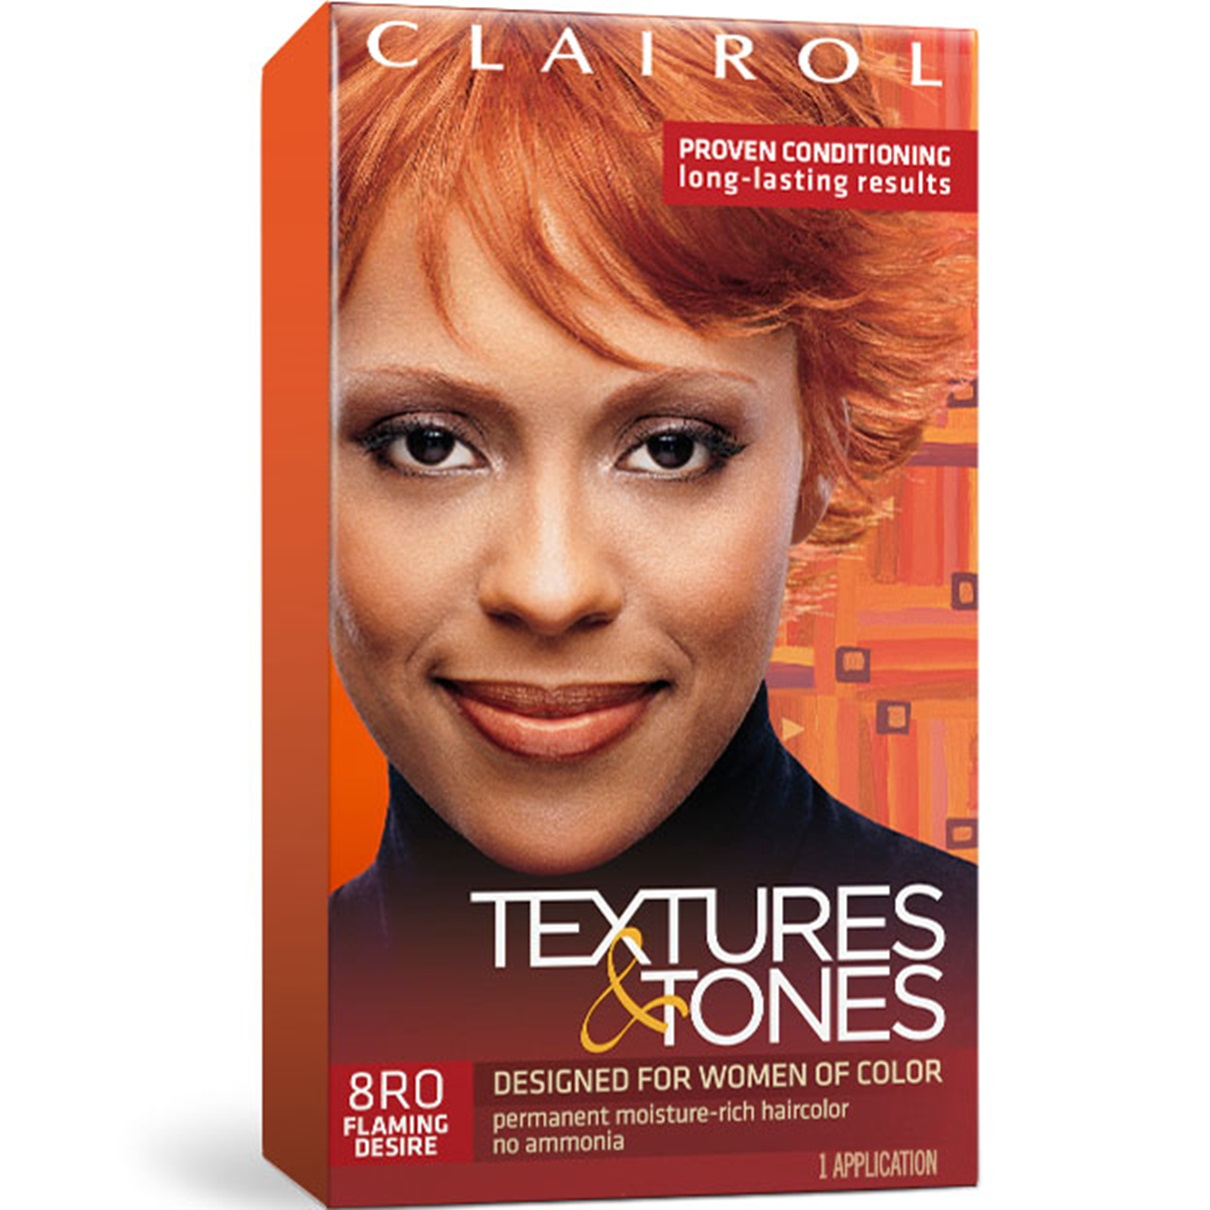 Clairol Textures And Tones Semi Permanent Hair Color